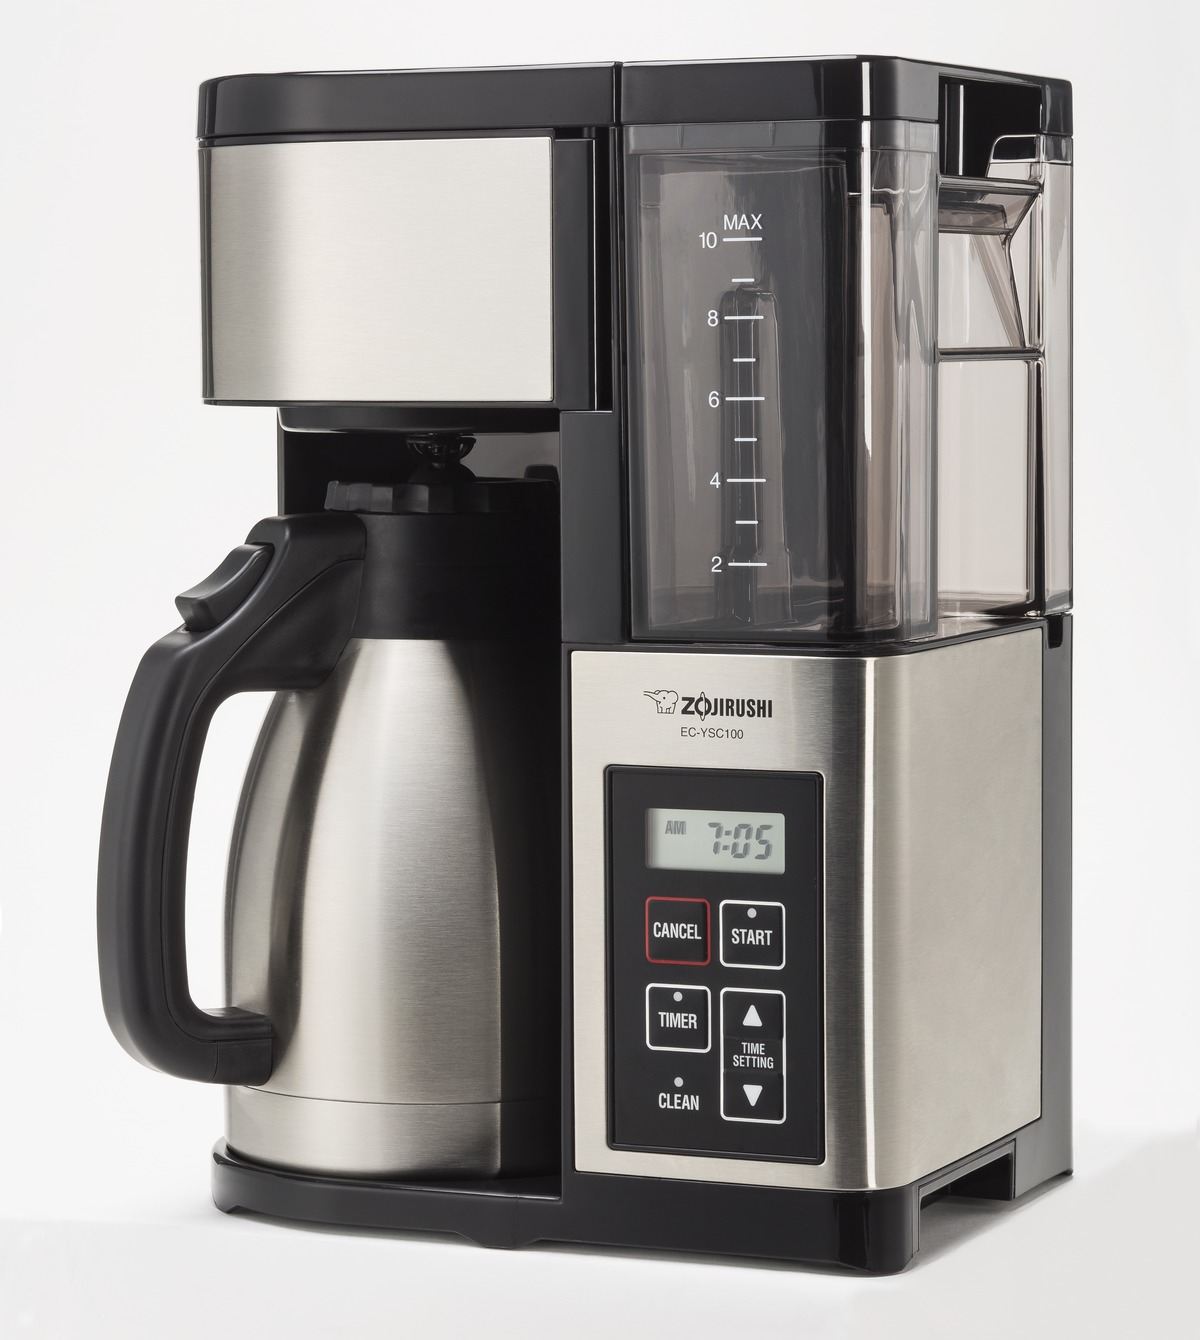 Automatic Drip Coffee Maker History : Coffeemaker - Wikipedia